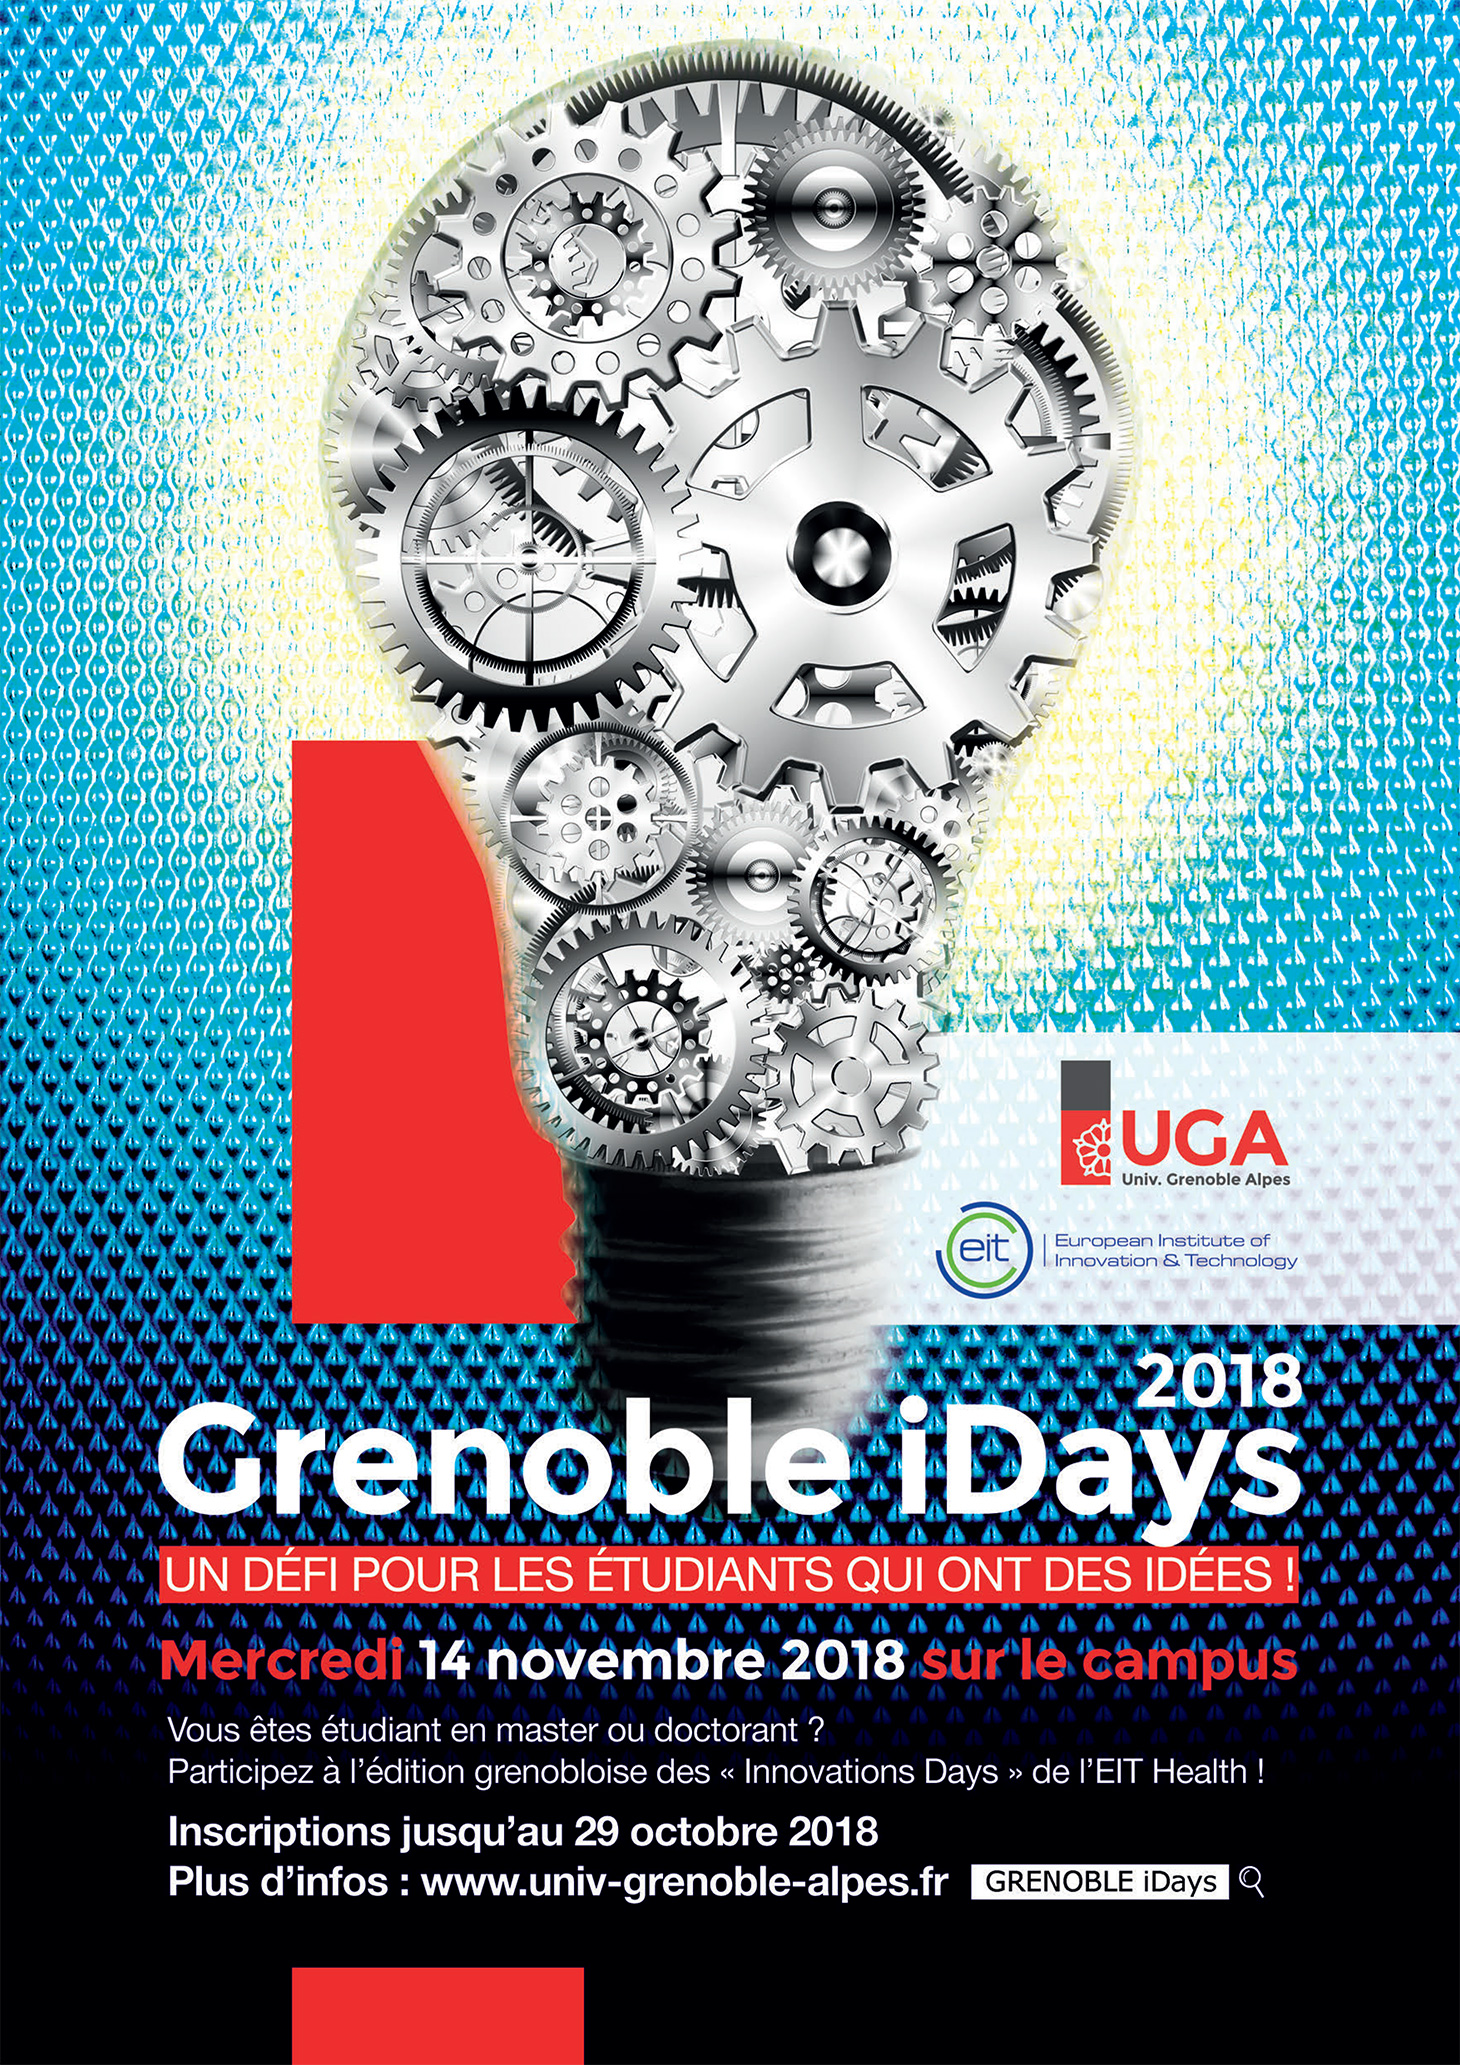 Grenoble iDays - Affiche 2018